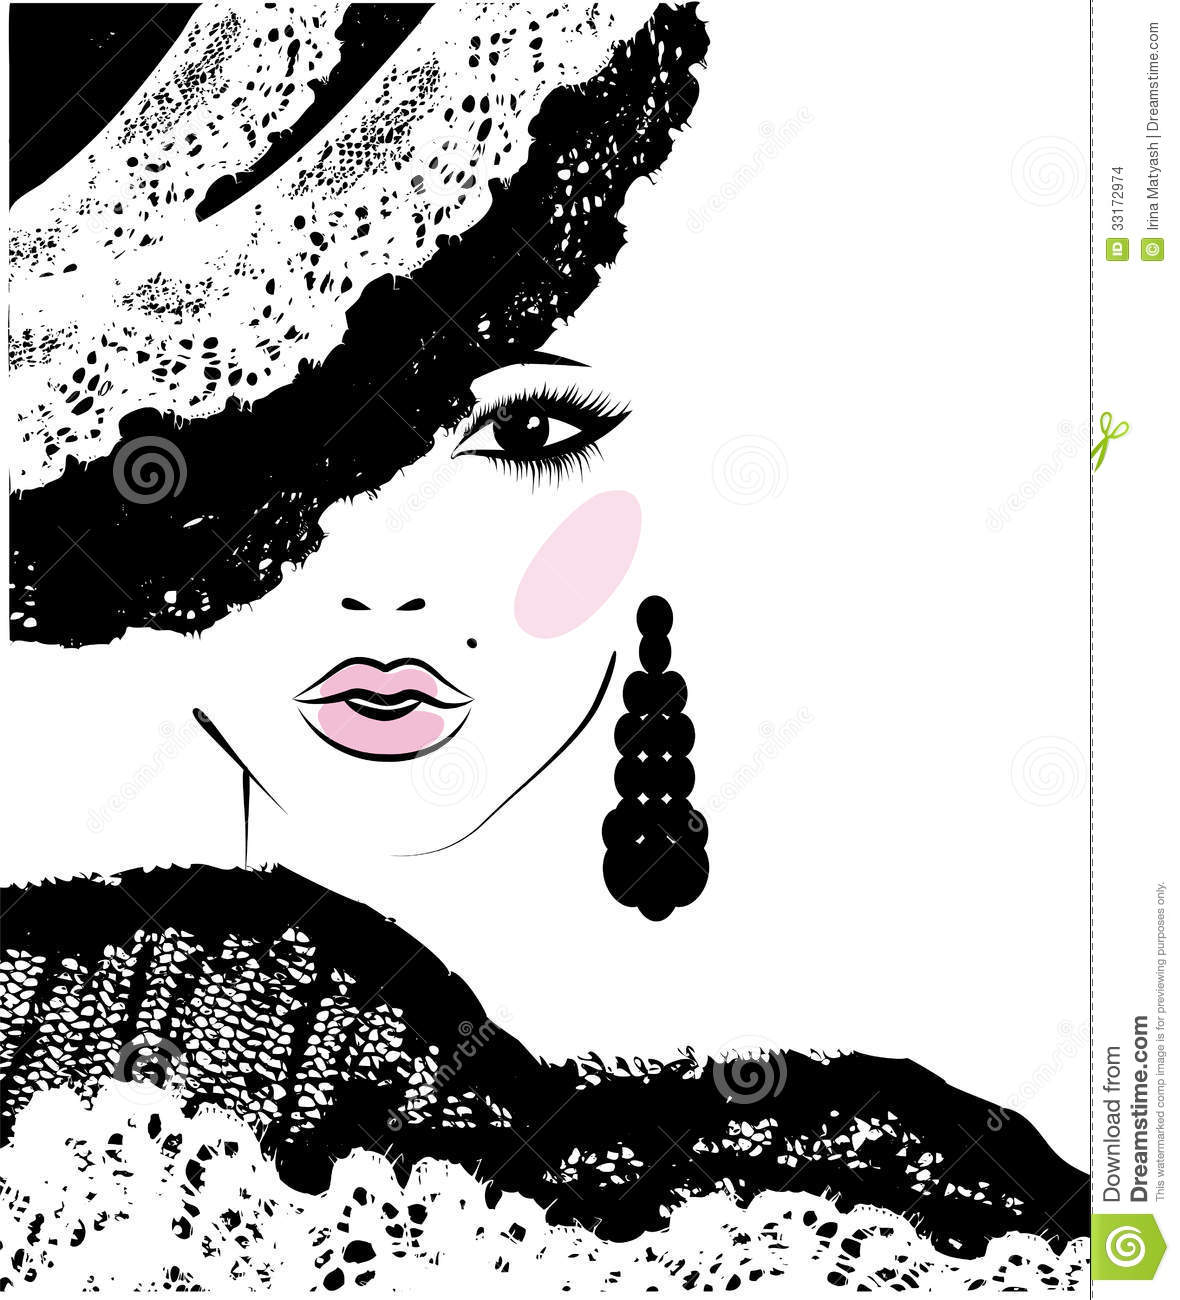 1000 Images About Fashion Illustrations On Pinterest: Girl With In A Lace Hat, Fashion Illustration Stock Vector